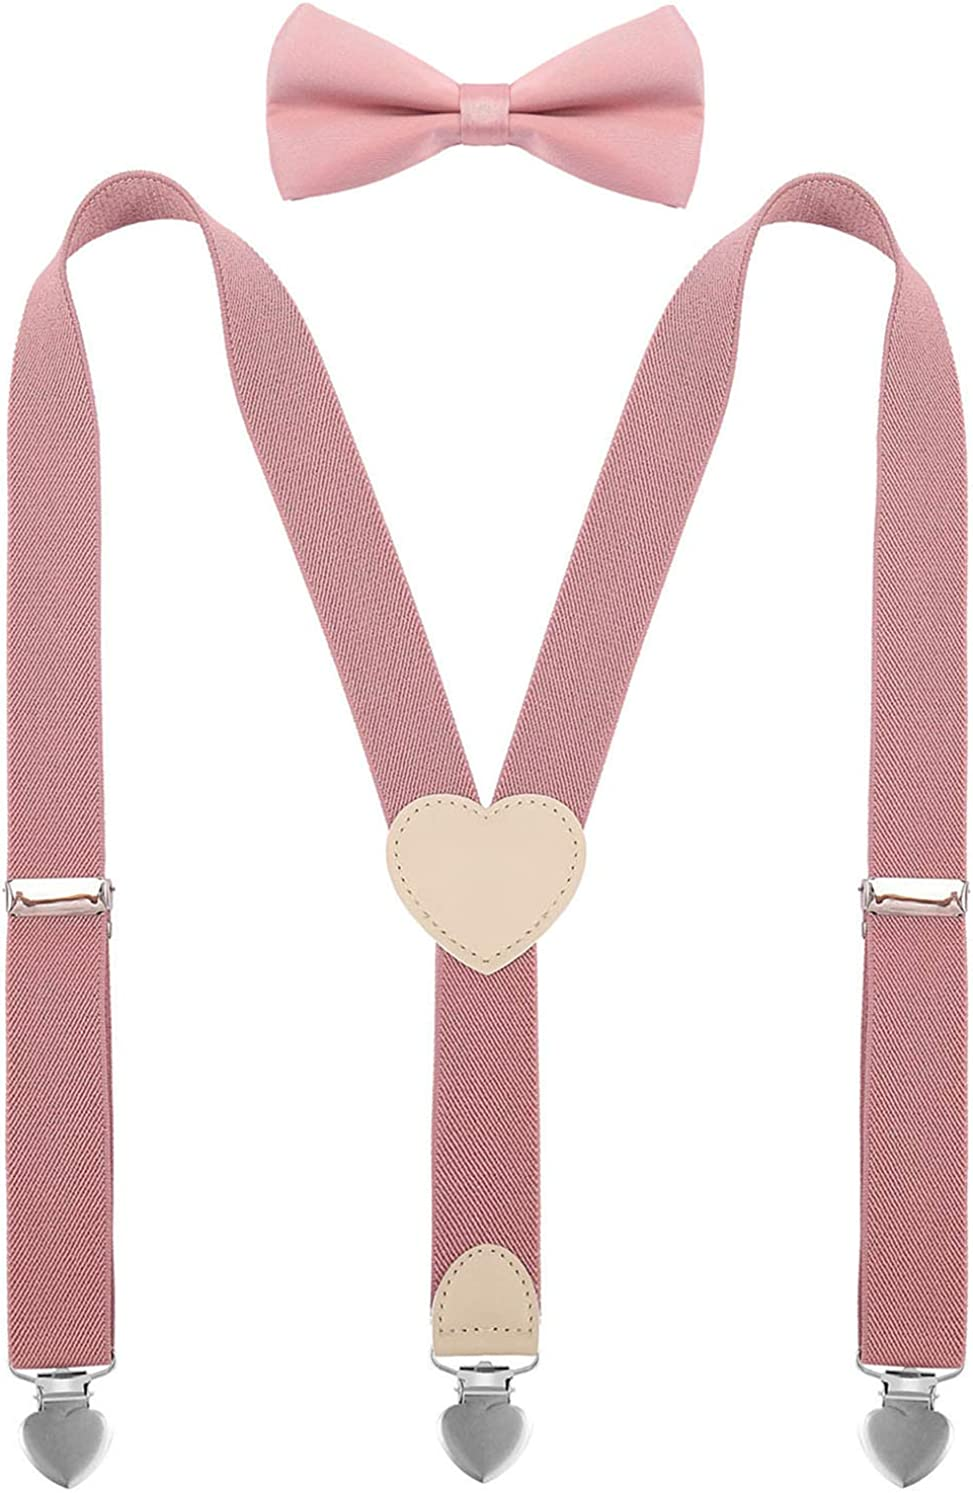 YJDS Suspenders for Boys and Bow Tie Set Y Back Heart-Shaped Clips